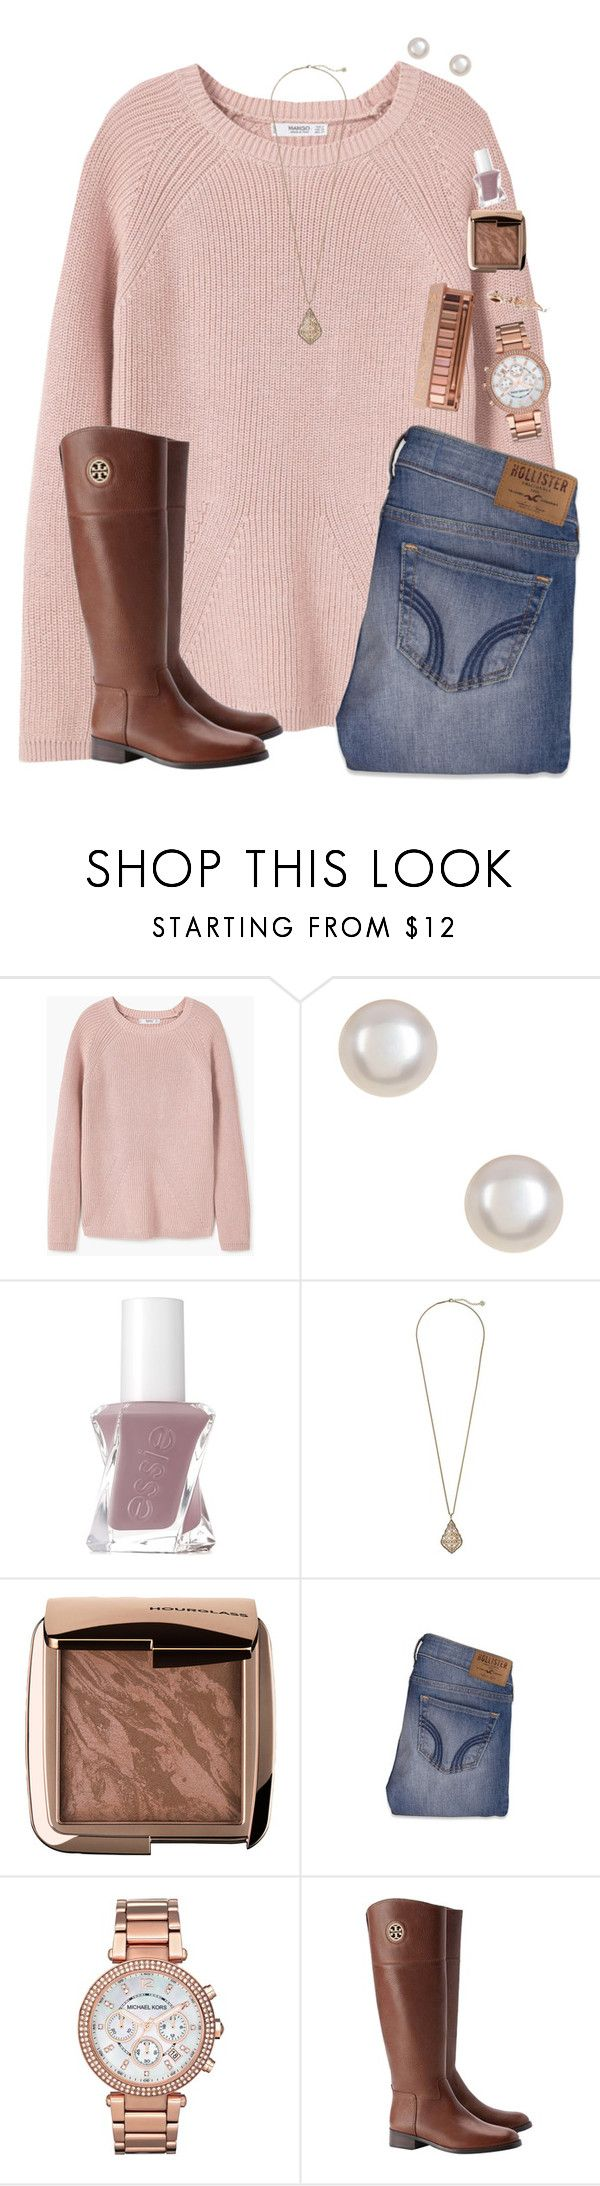 """""""tbh i'm obsessed with rose tones"""" by chevron-elephants ❤ liked on Polyvore featuring MANGO, Essie, Kendra Scott, Hourglass Cosmetics, Hollister Co., Michael Kors, Tory Burch and Urban Decay"""